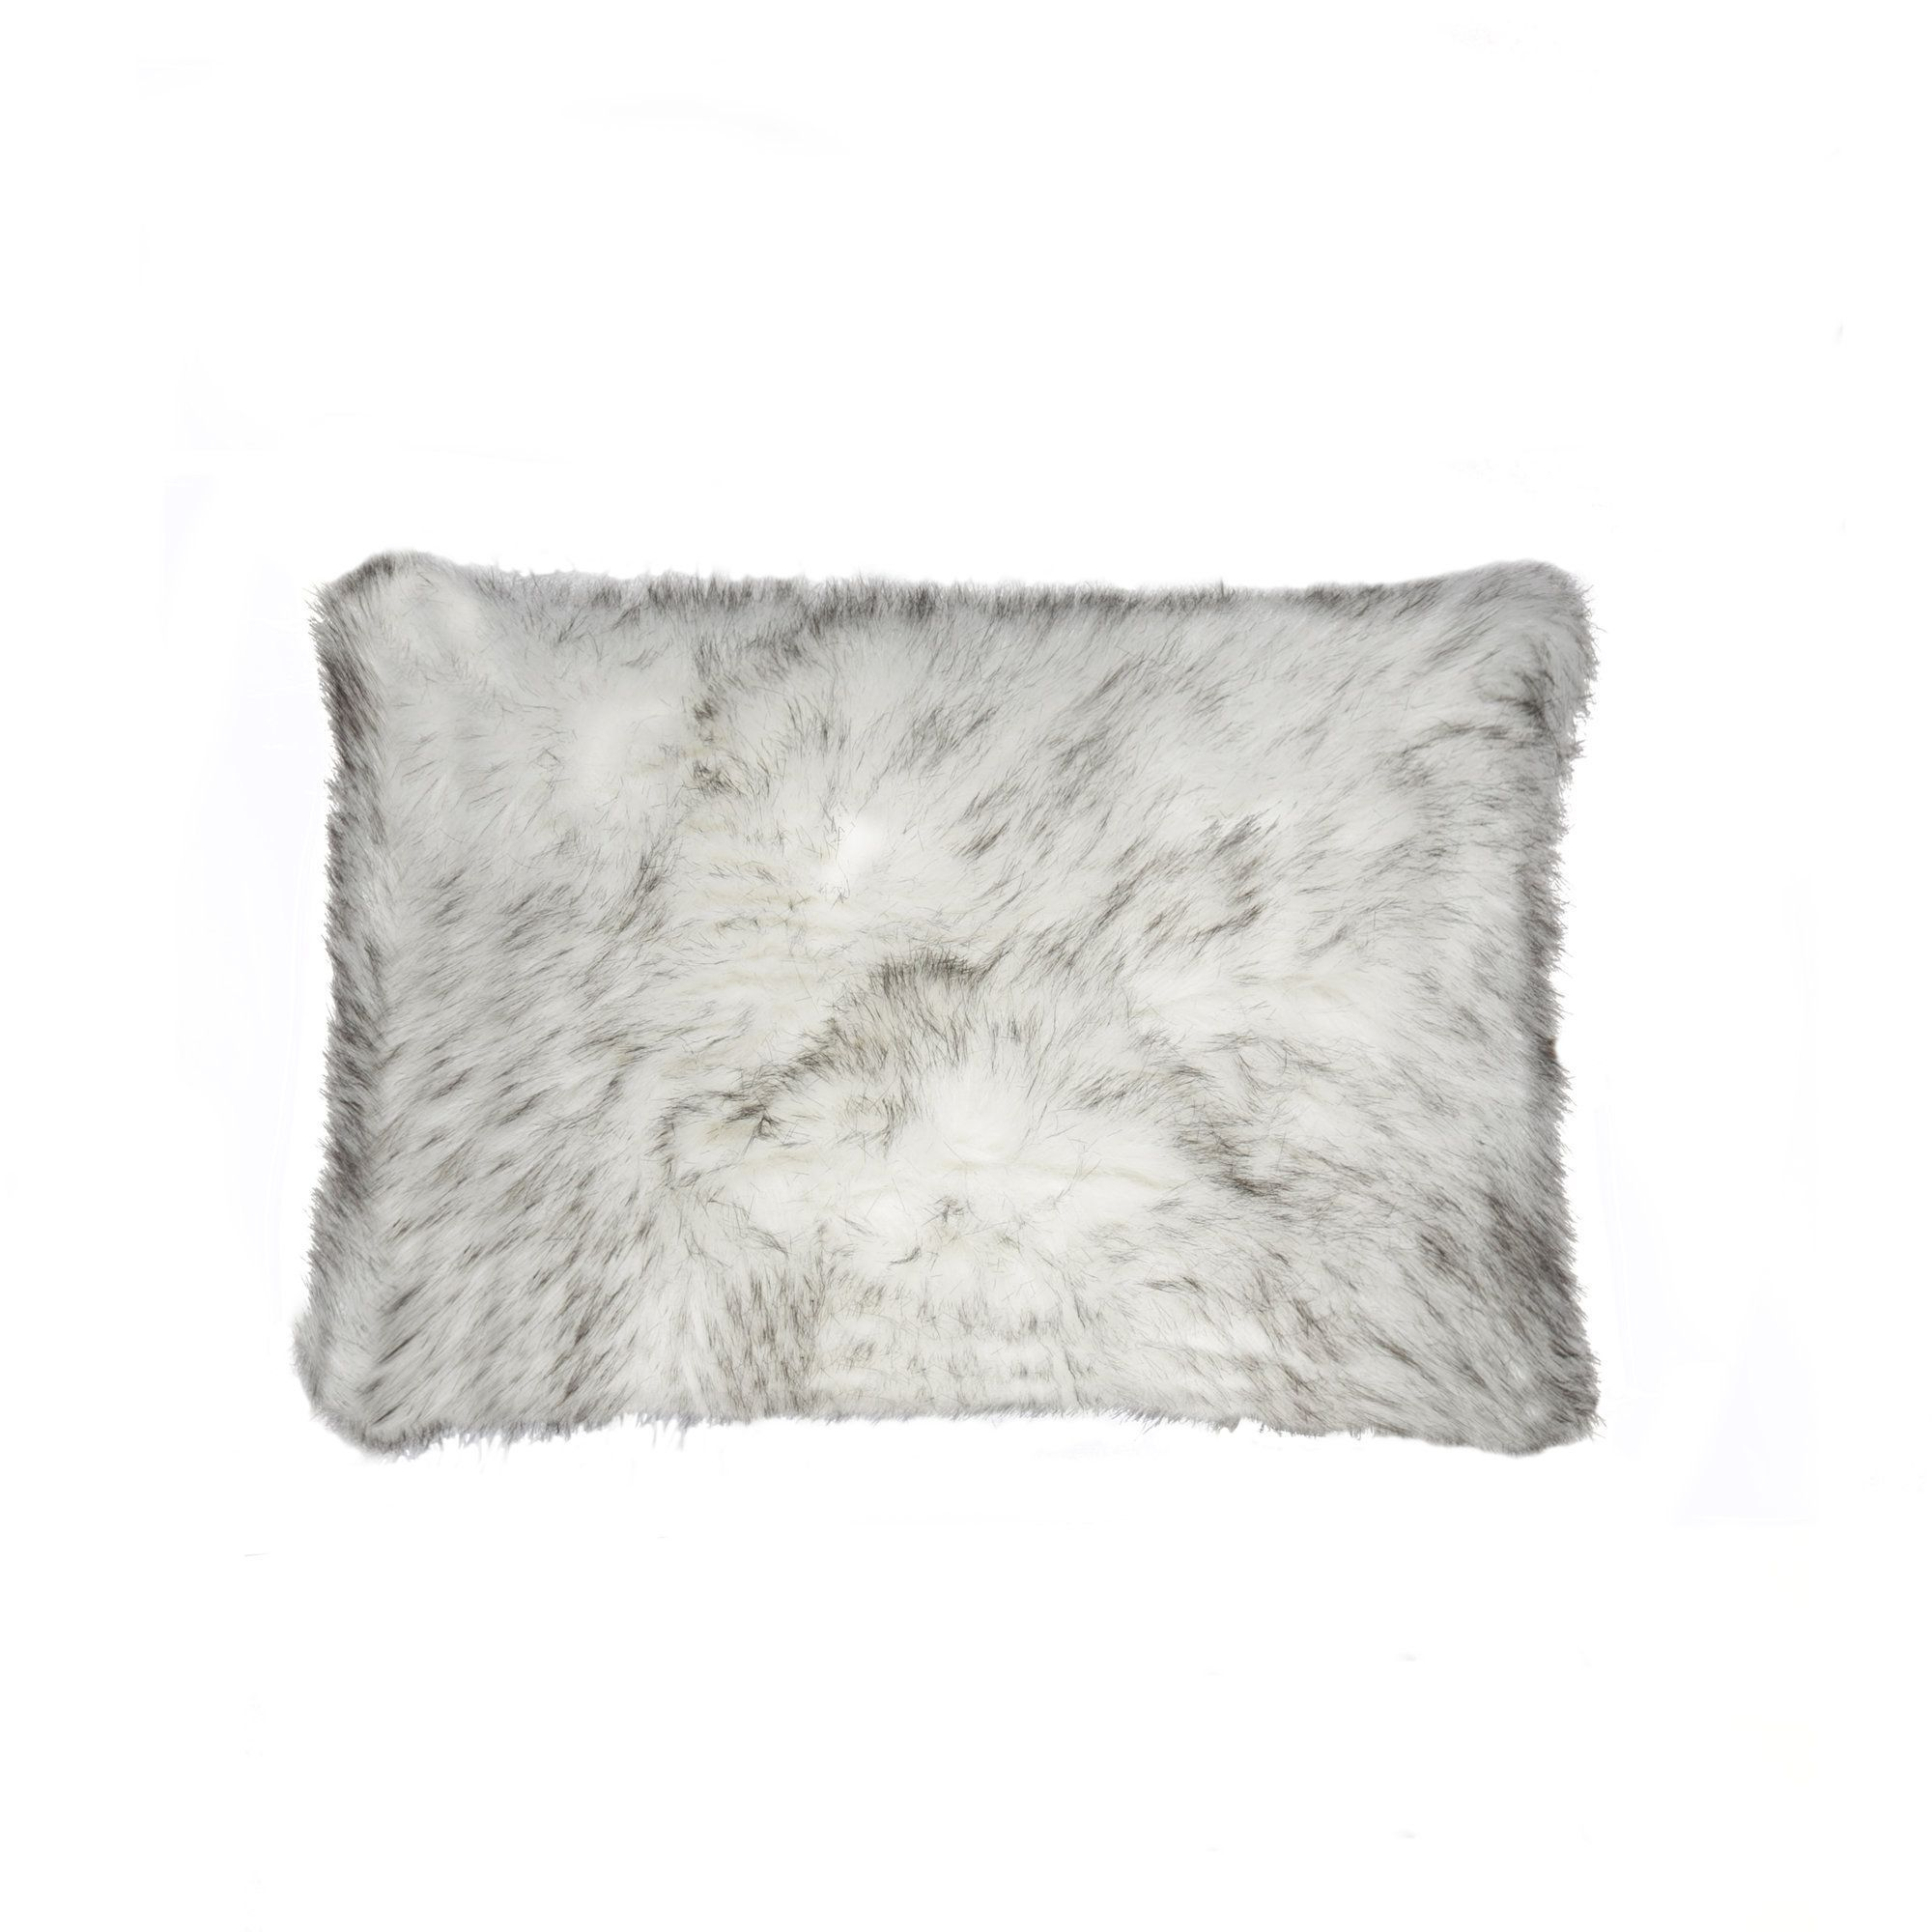 qlt prod pillow faux fur mongolian wid mongolin p white spin hei pillows